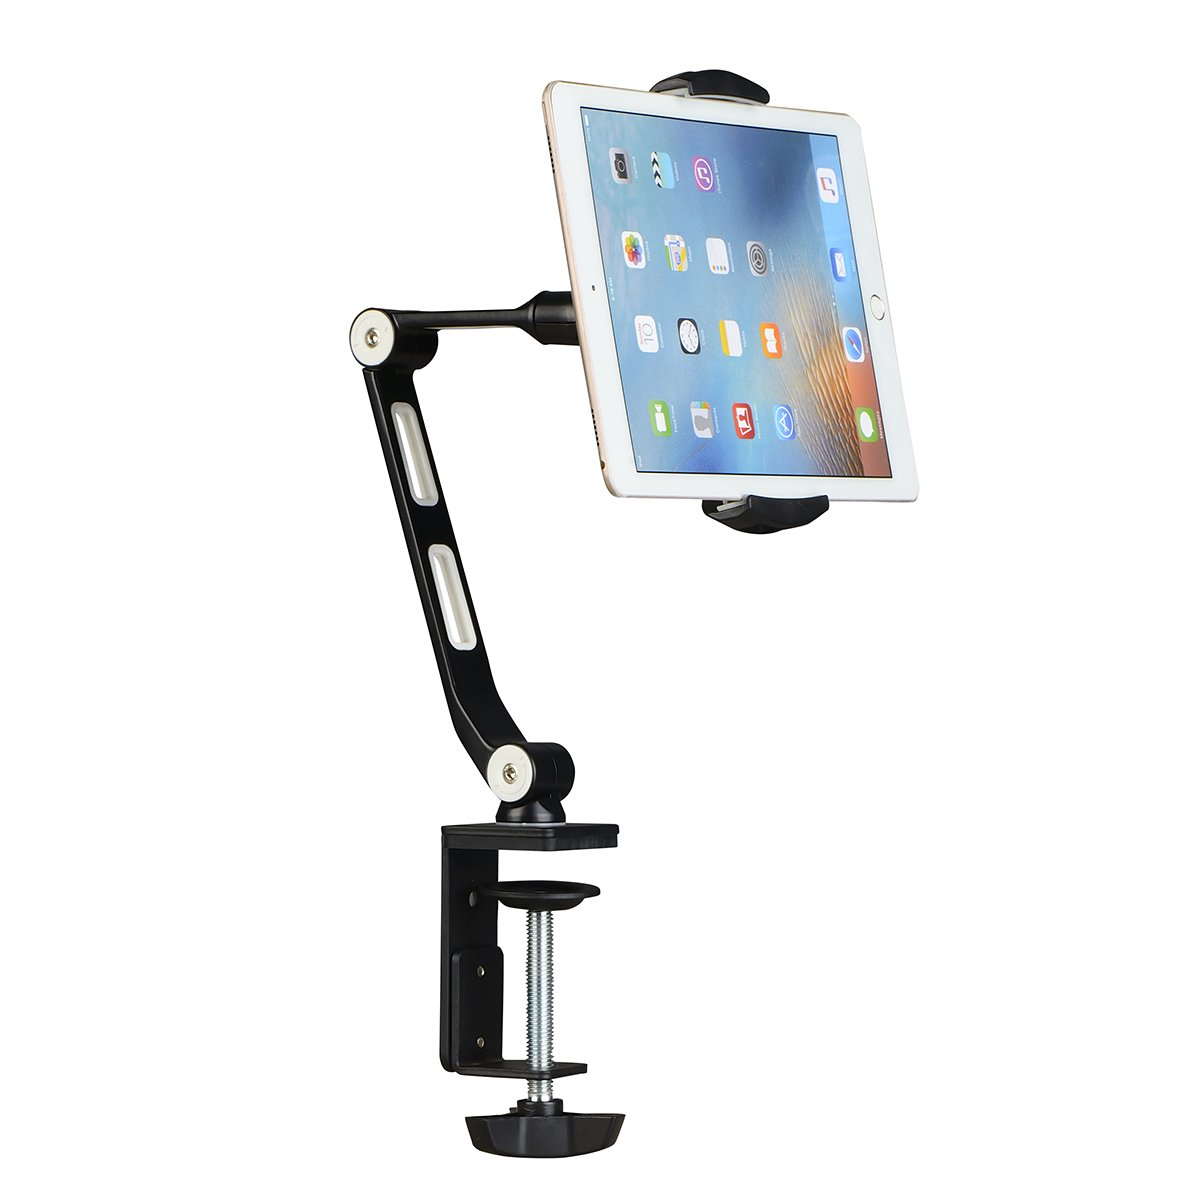 suptek 360 Degree Adjustable Stand/Holder with Clamp for Tablets & iPad iPhone Samsung Asus Tablet Smartphone and more up to 13 inches Black YF208B